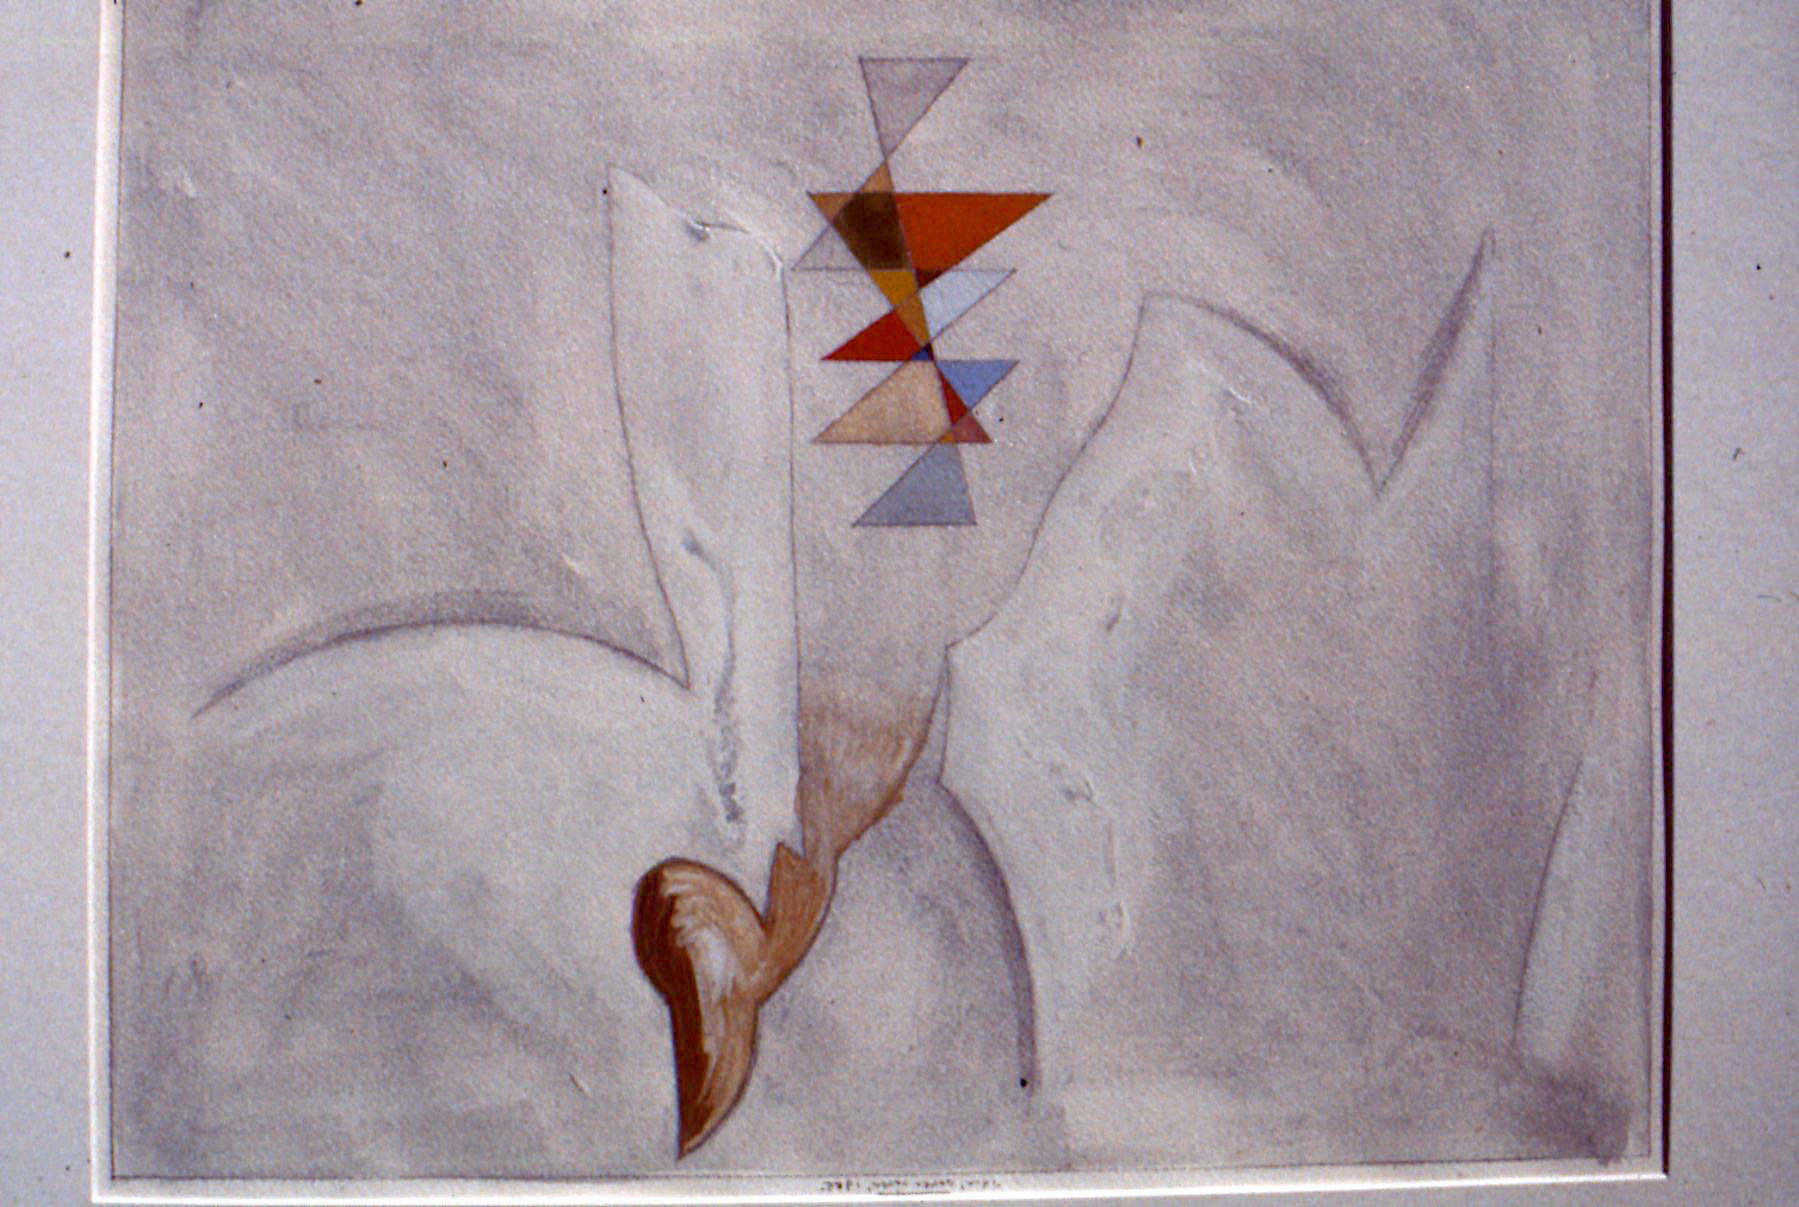 Untitled, 1985. gouache on paper